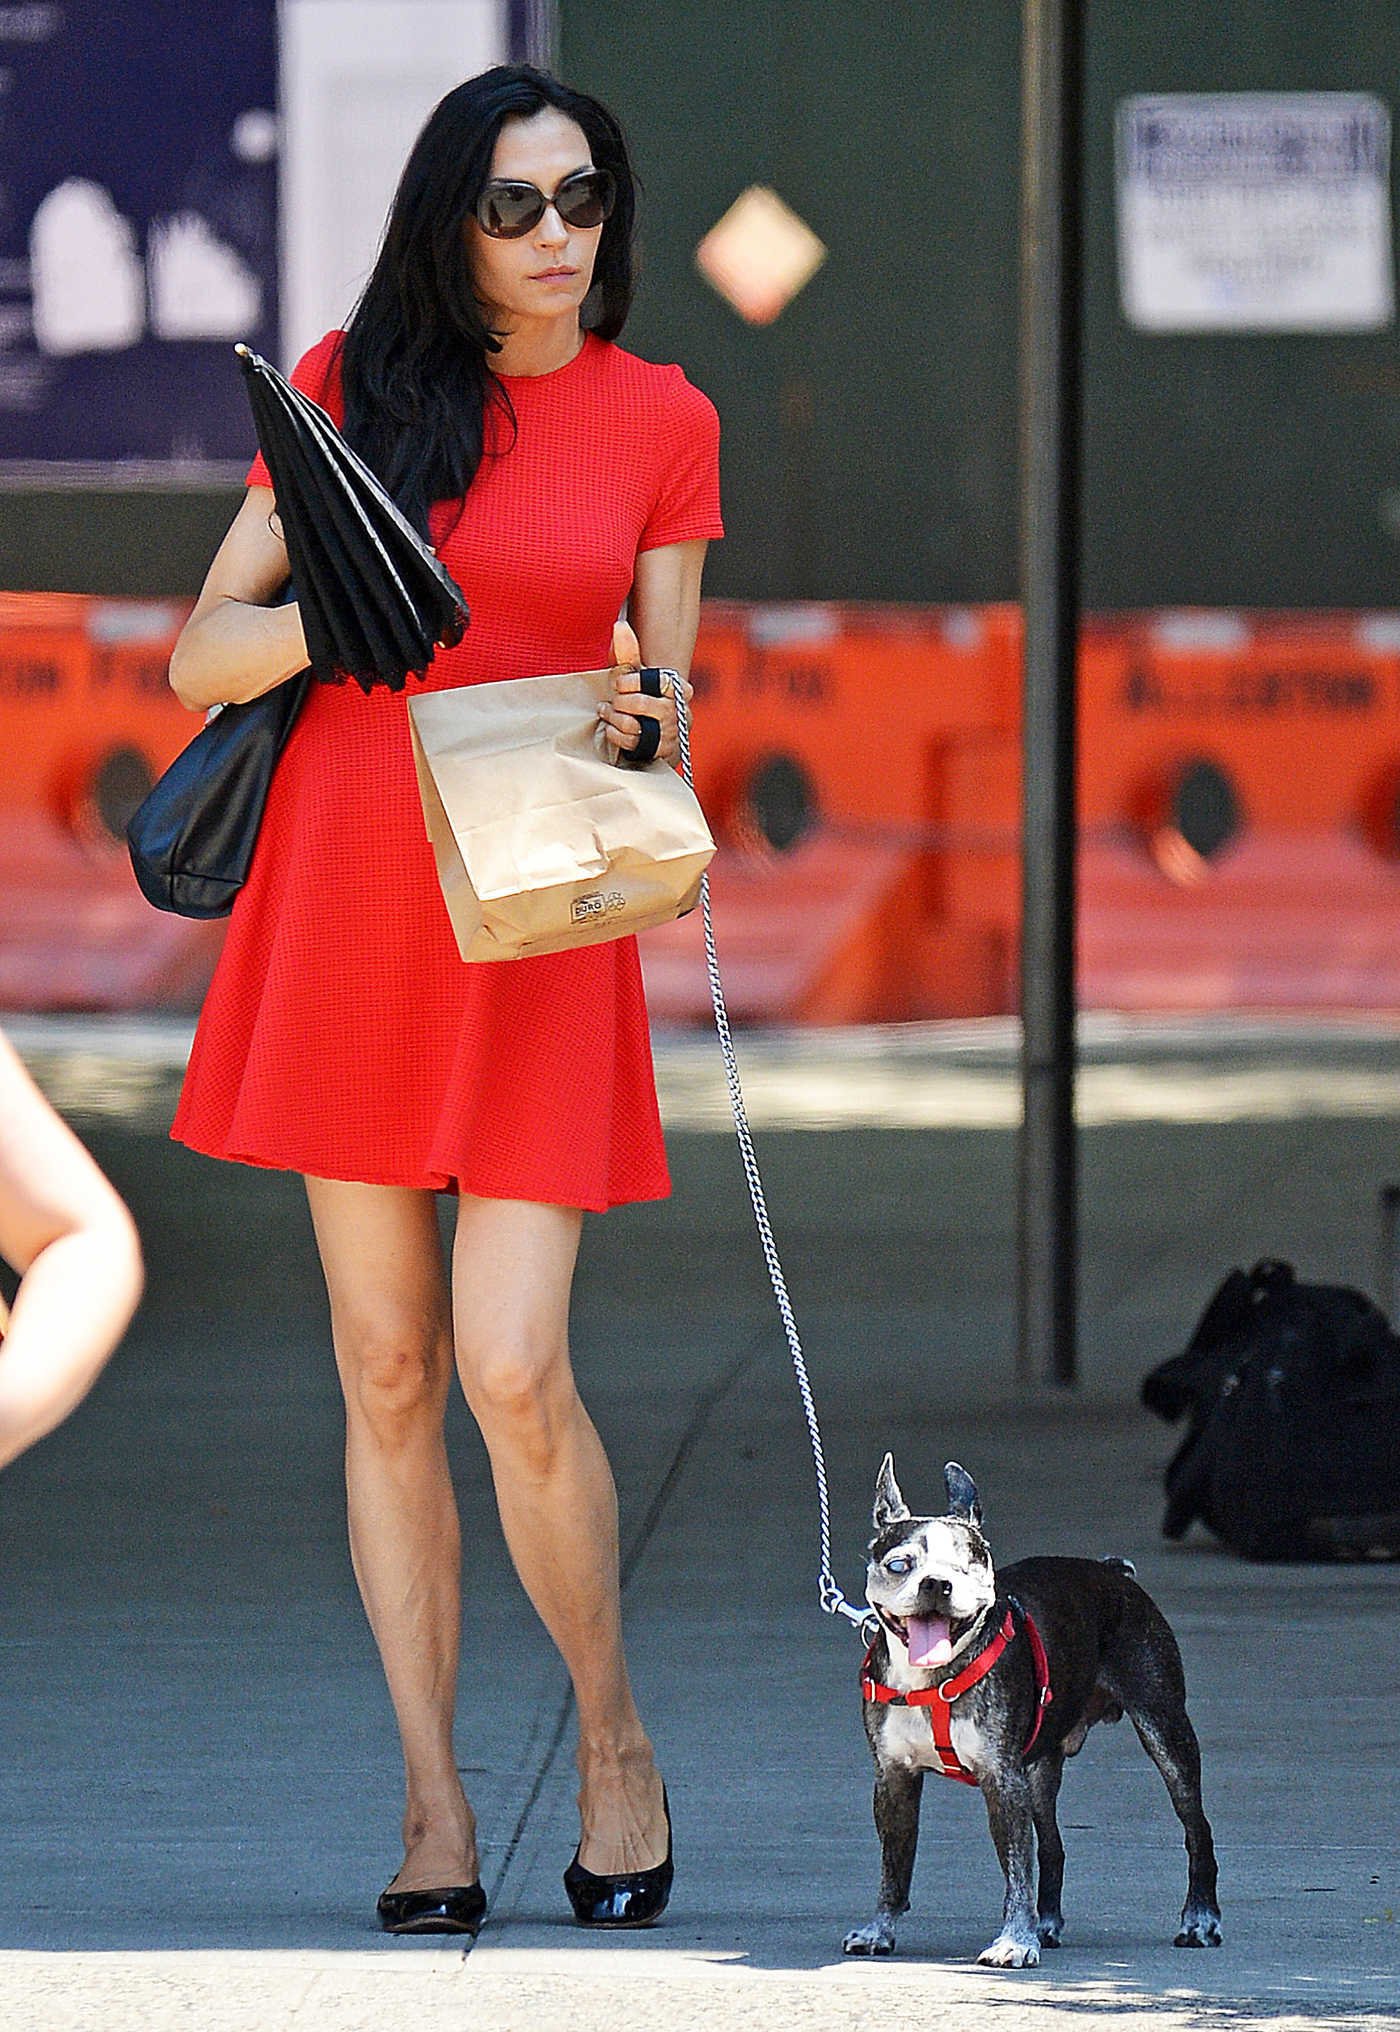 Famke Janssen Walking Her Dog in New York City 07/25/2016